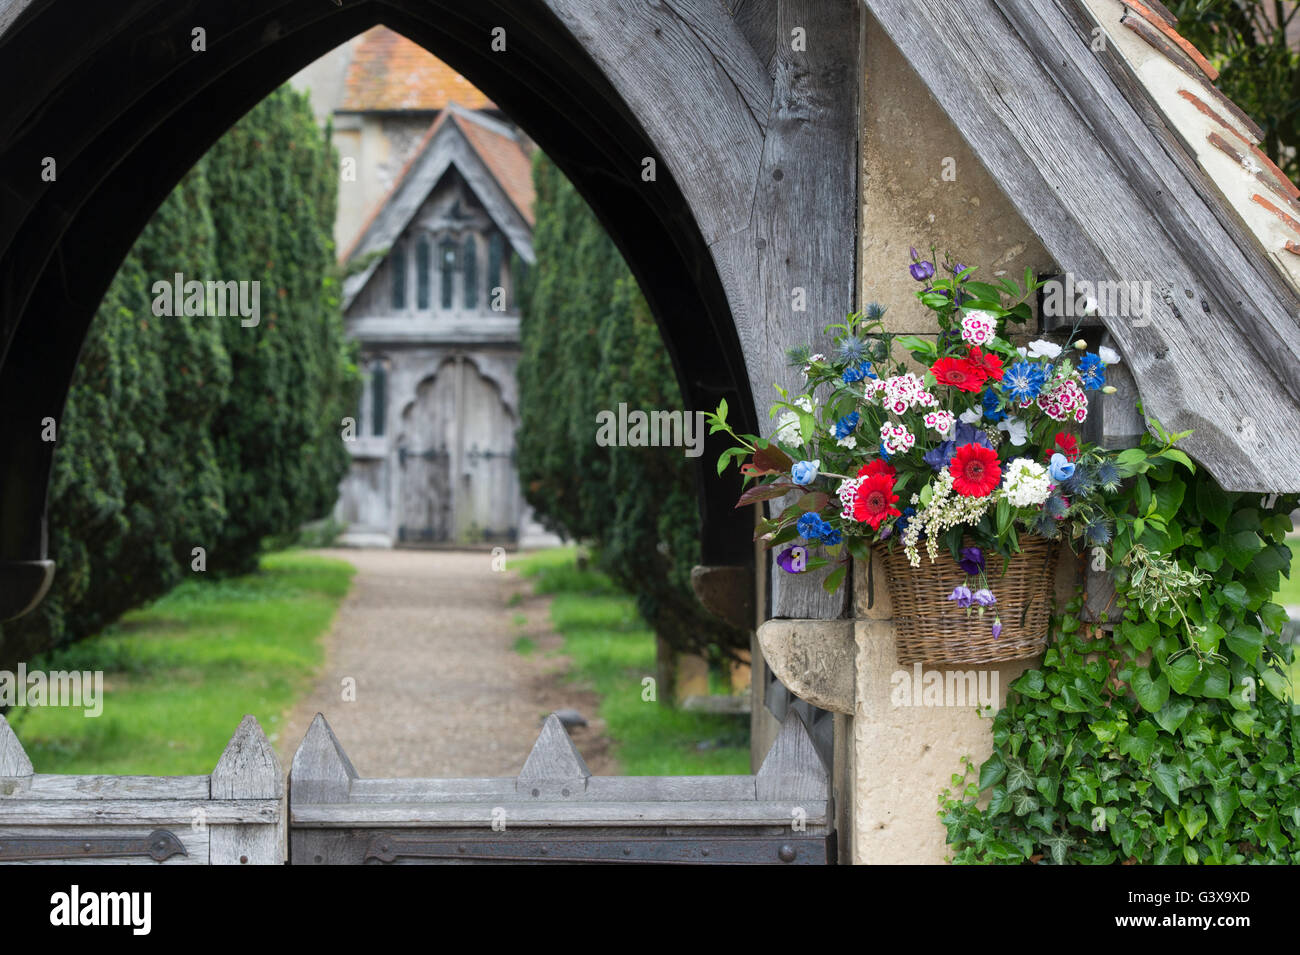 Flower basket on St Marys church lychgate. Hambleden, Buckinghamshire, England - Stock Image